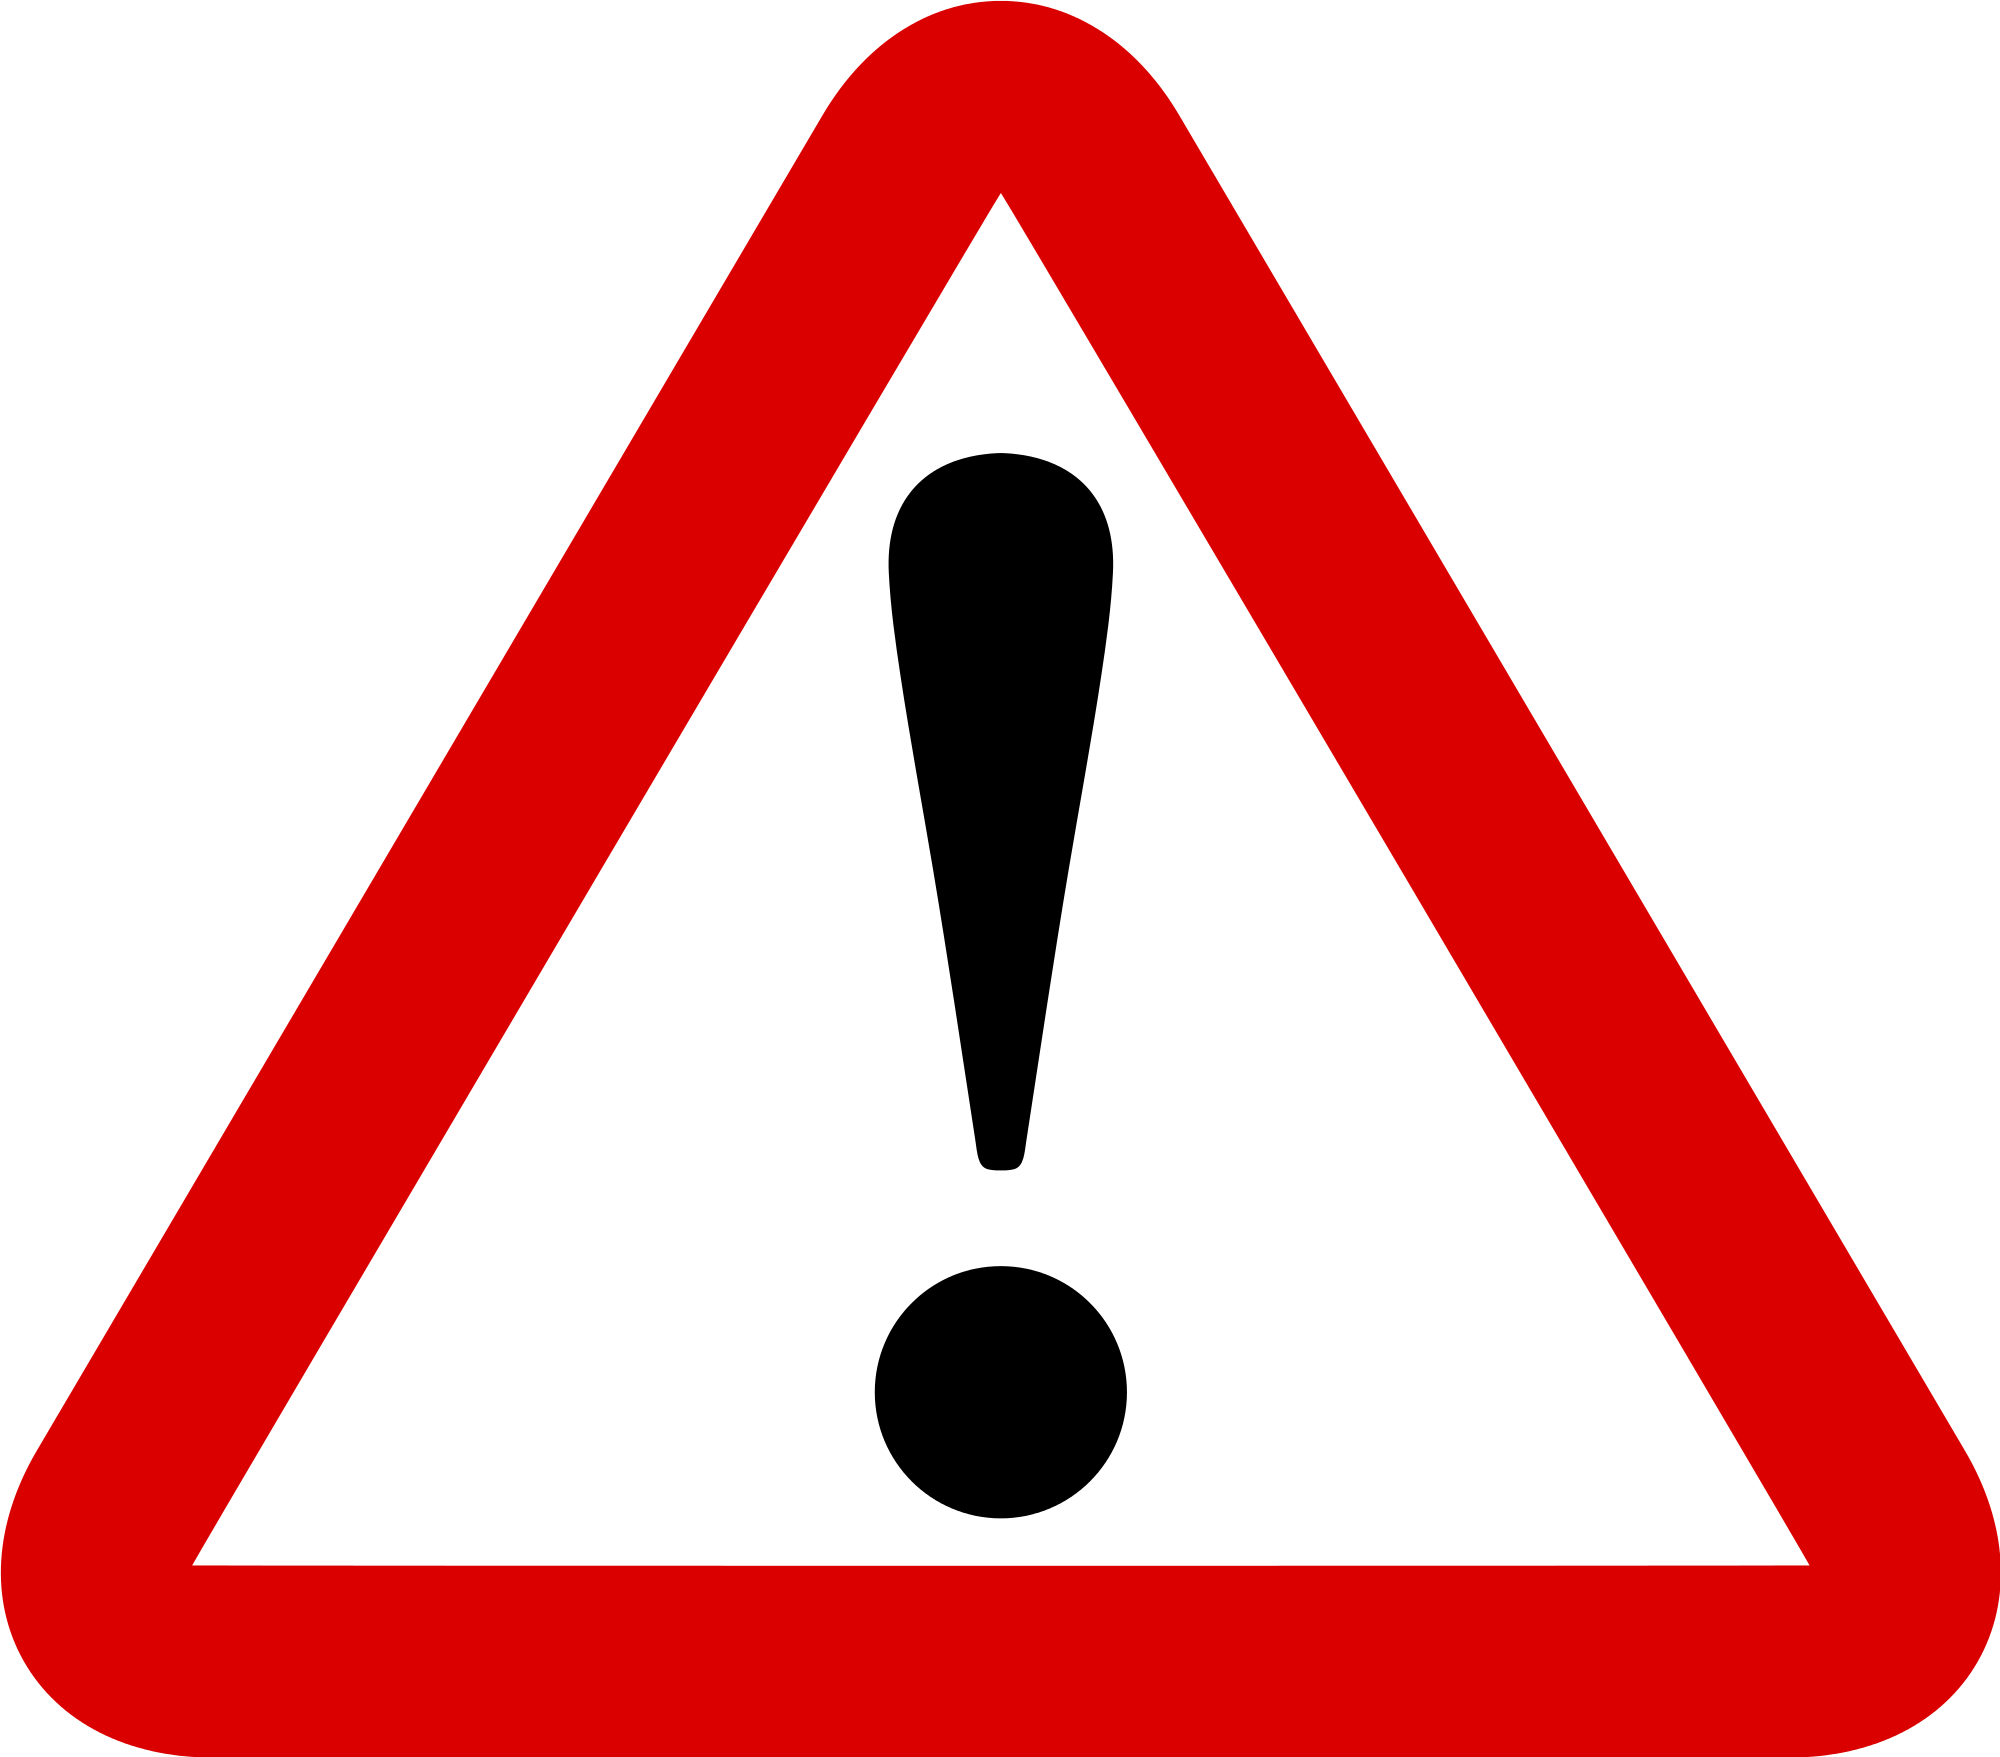 Danger clipart. Free road signs download